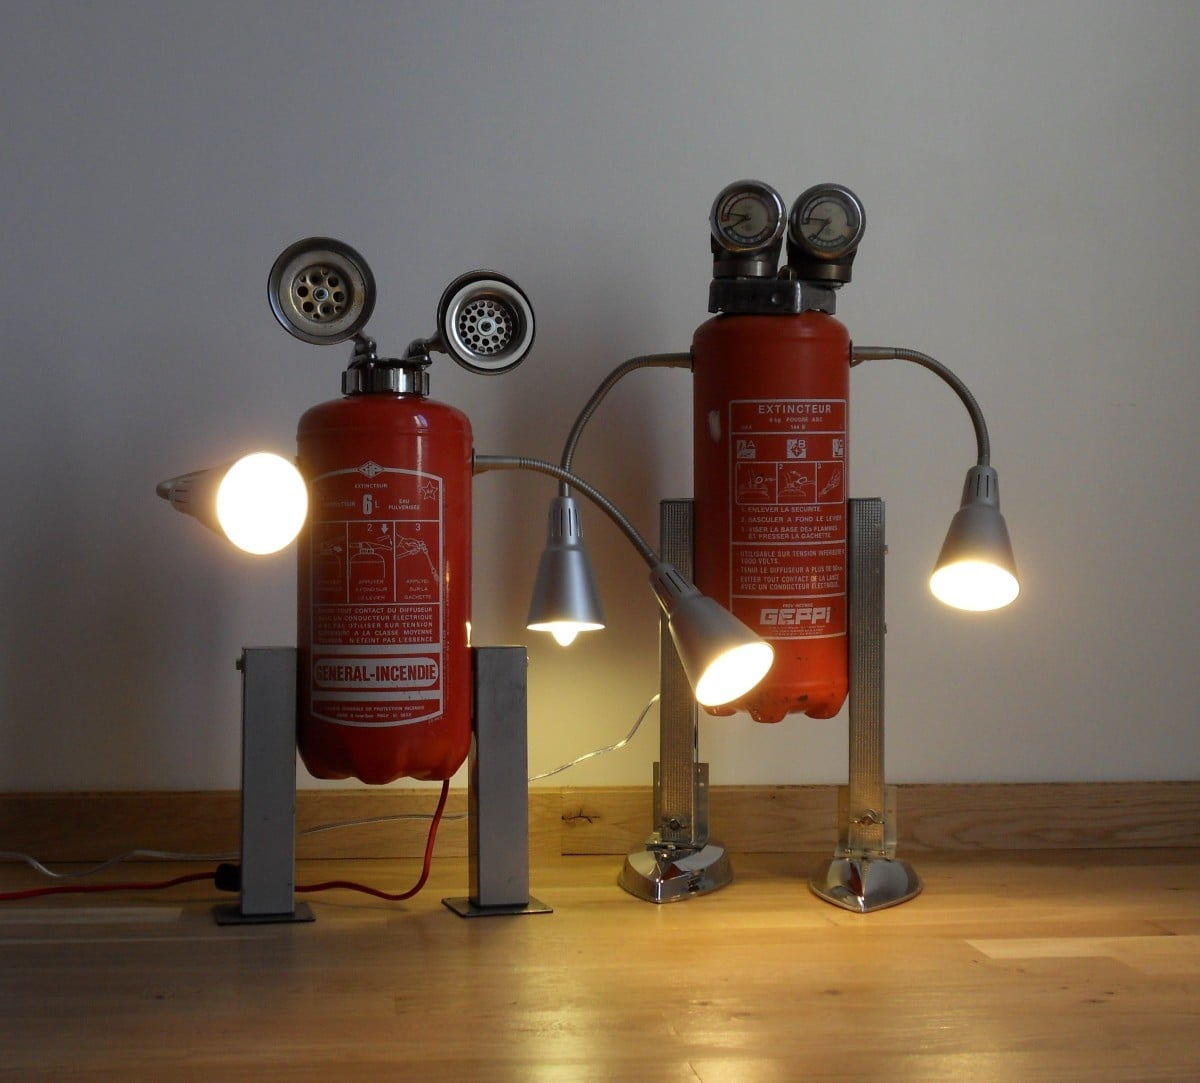 ikea kvart robot lamps ikea hackers. Black Bedroom Furniture Sets. Home Design Ideas